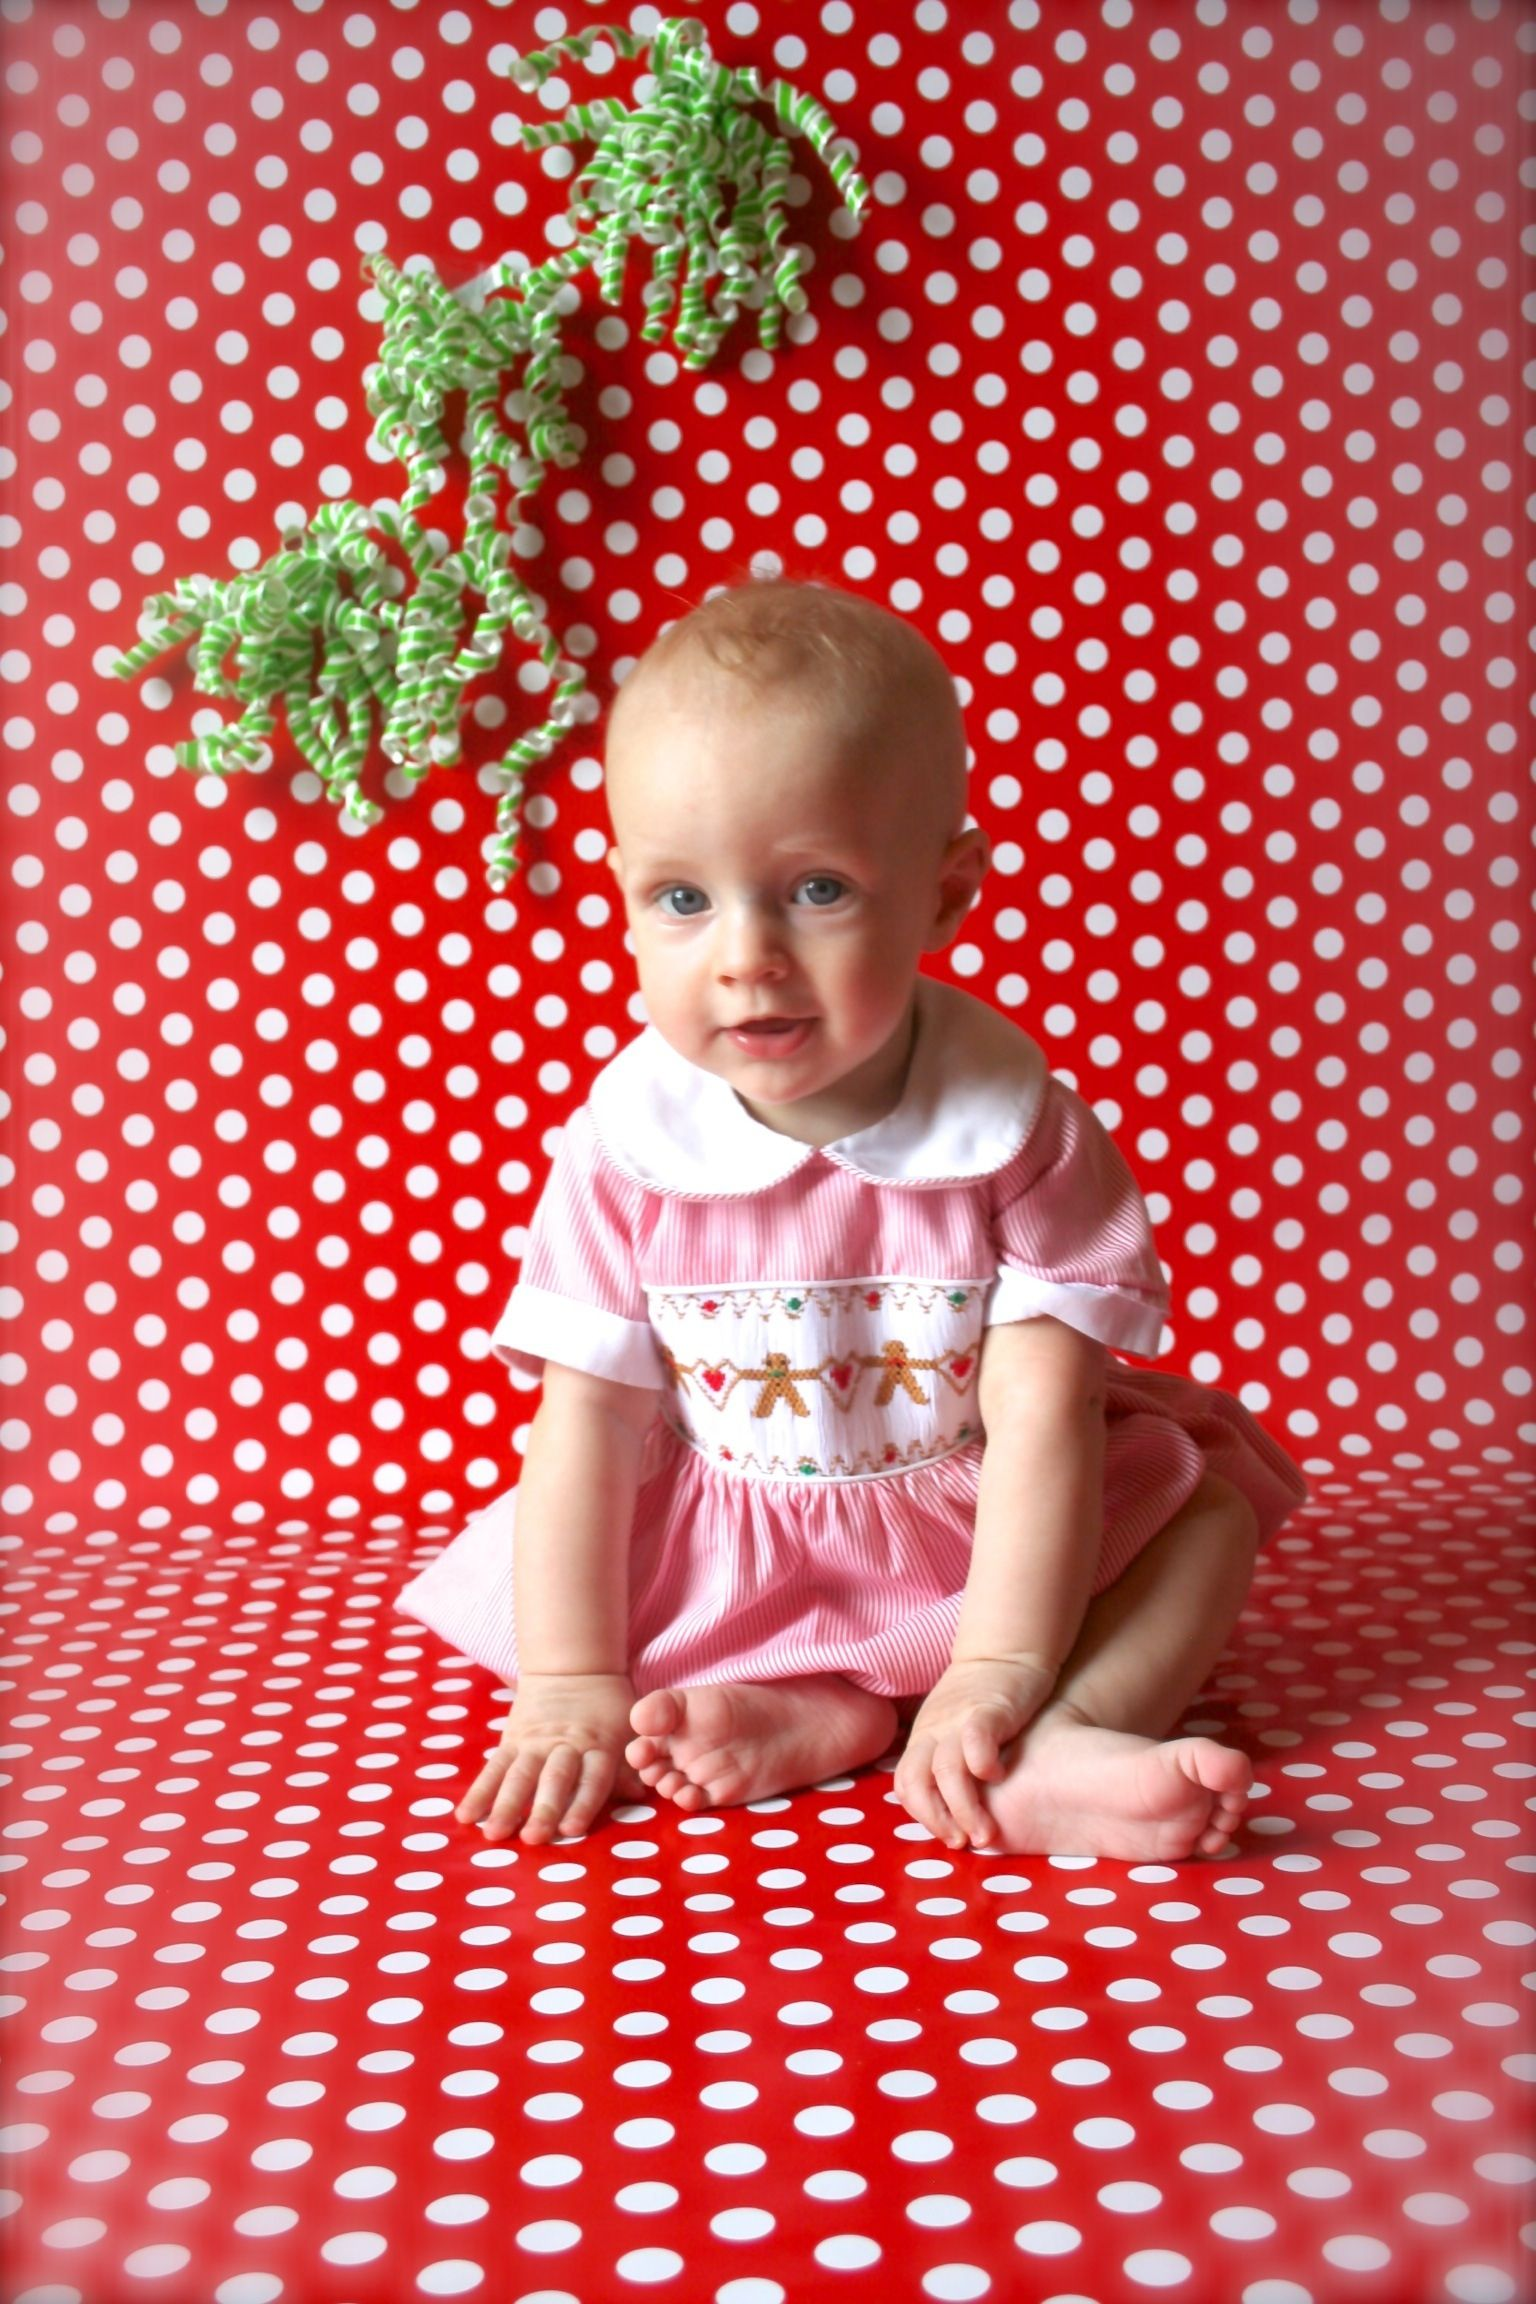 Using wrapping paper as a backdrop do it yourself baby picture using wrapping paper as a backdrop do it yourself solutioingenieria Choice Image